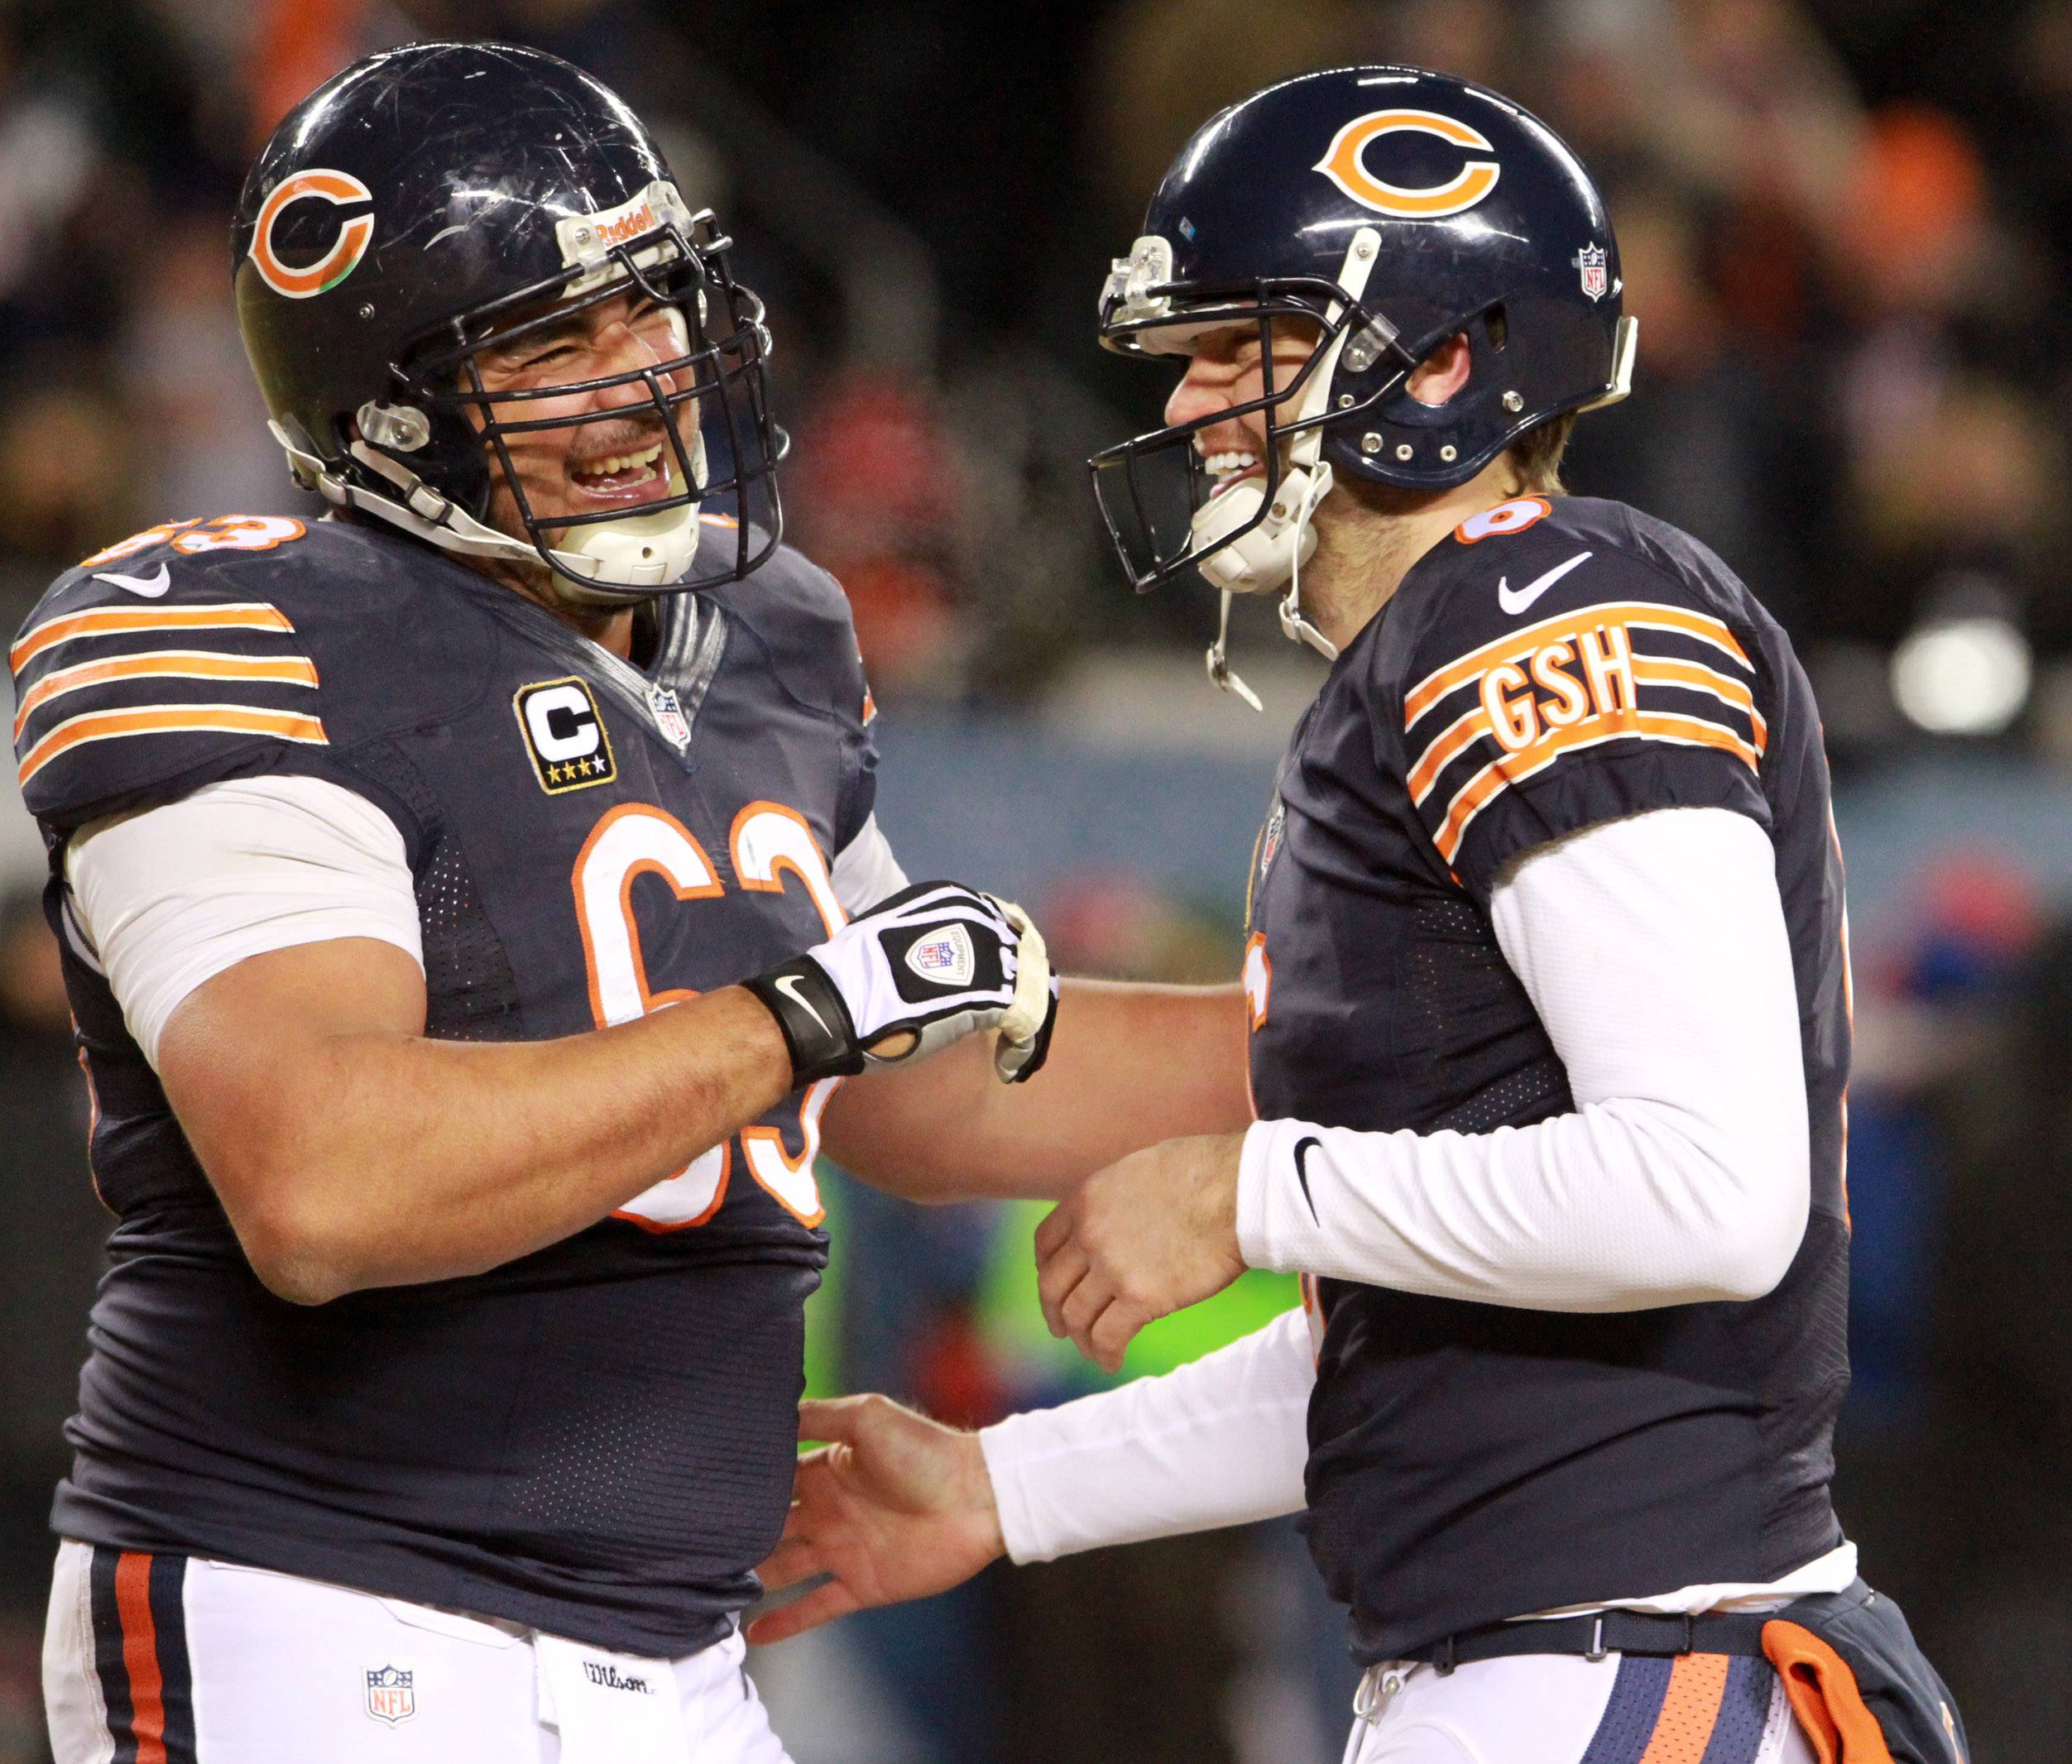 Bears quarterback Jay Cutler will get to work with center Roberto Garza (63) next season. Garza agreed to a one-year contract with the Bears for $1.5 million, according to sources.